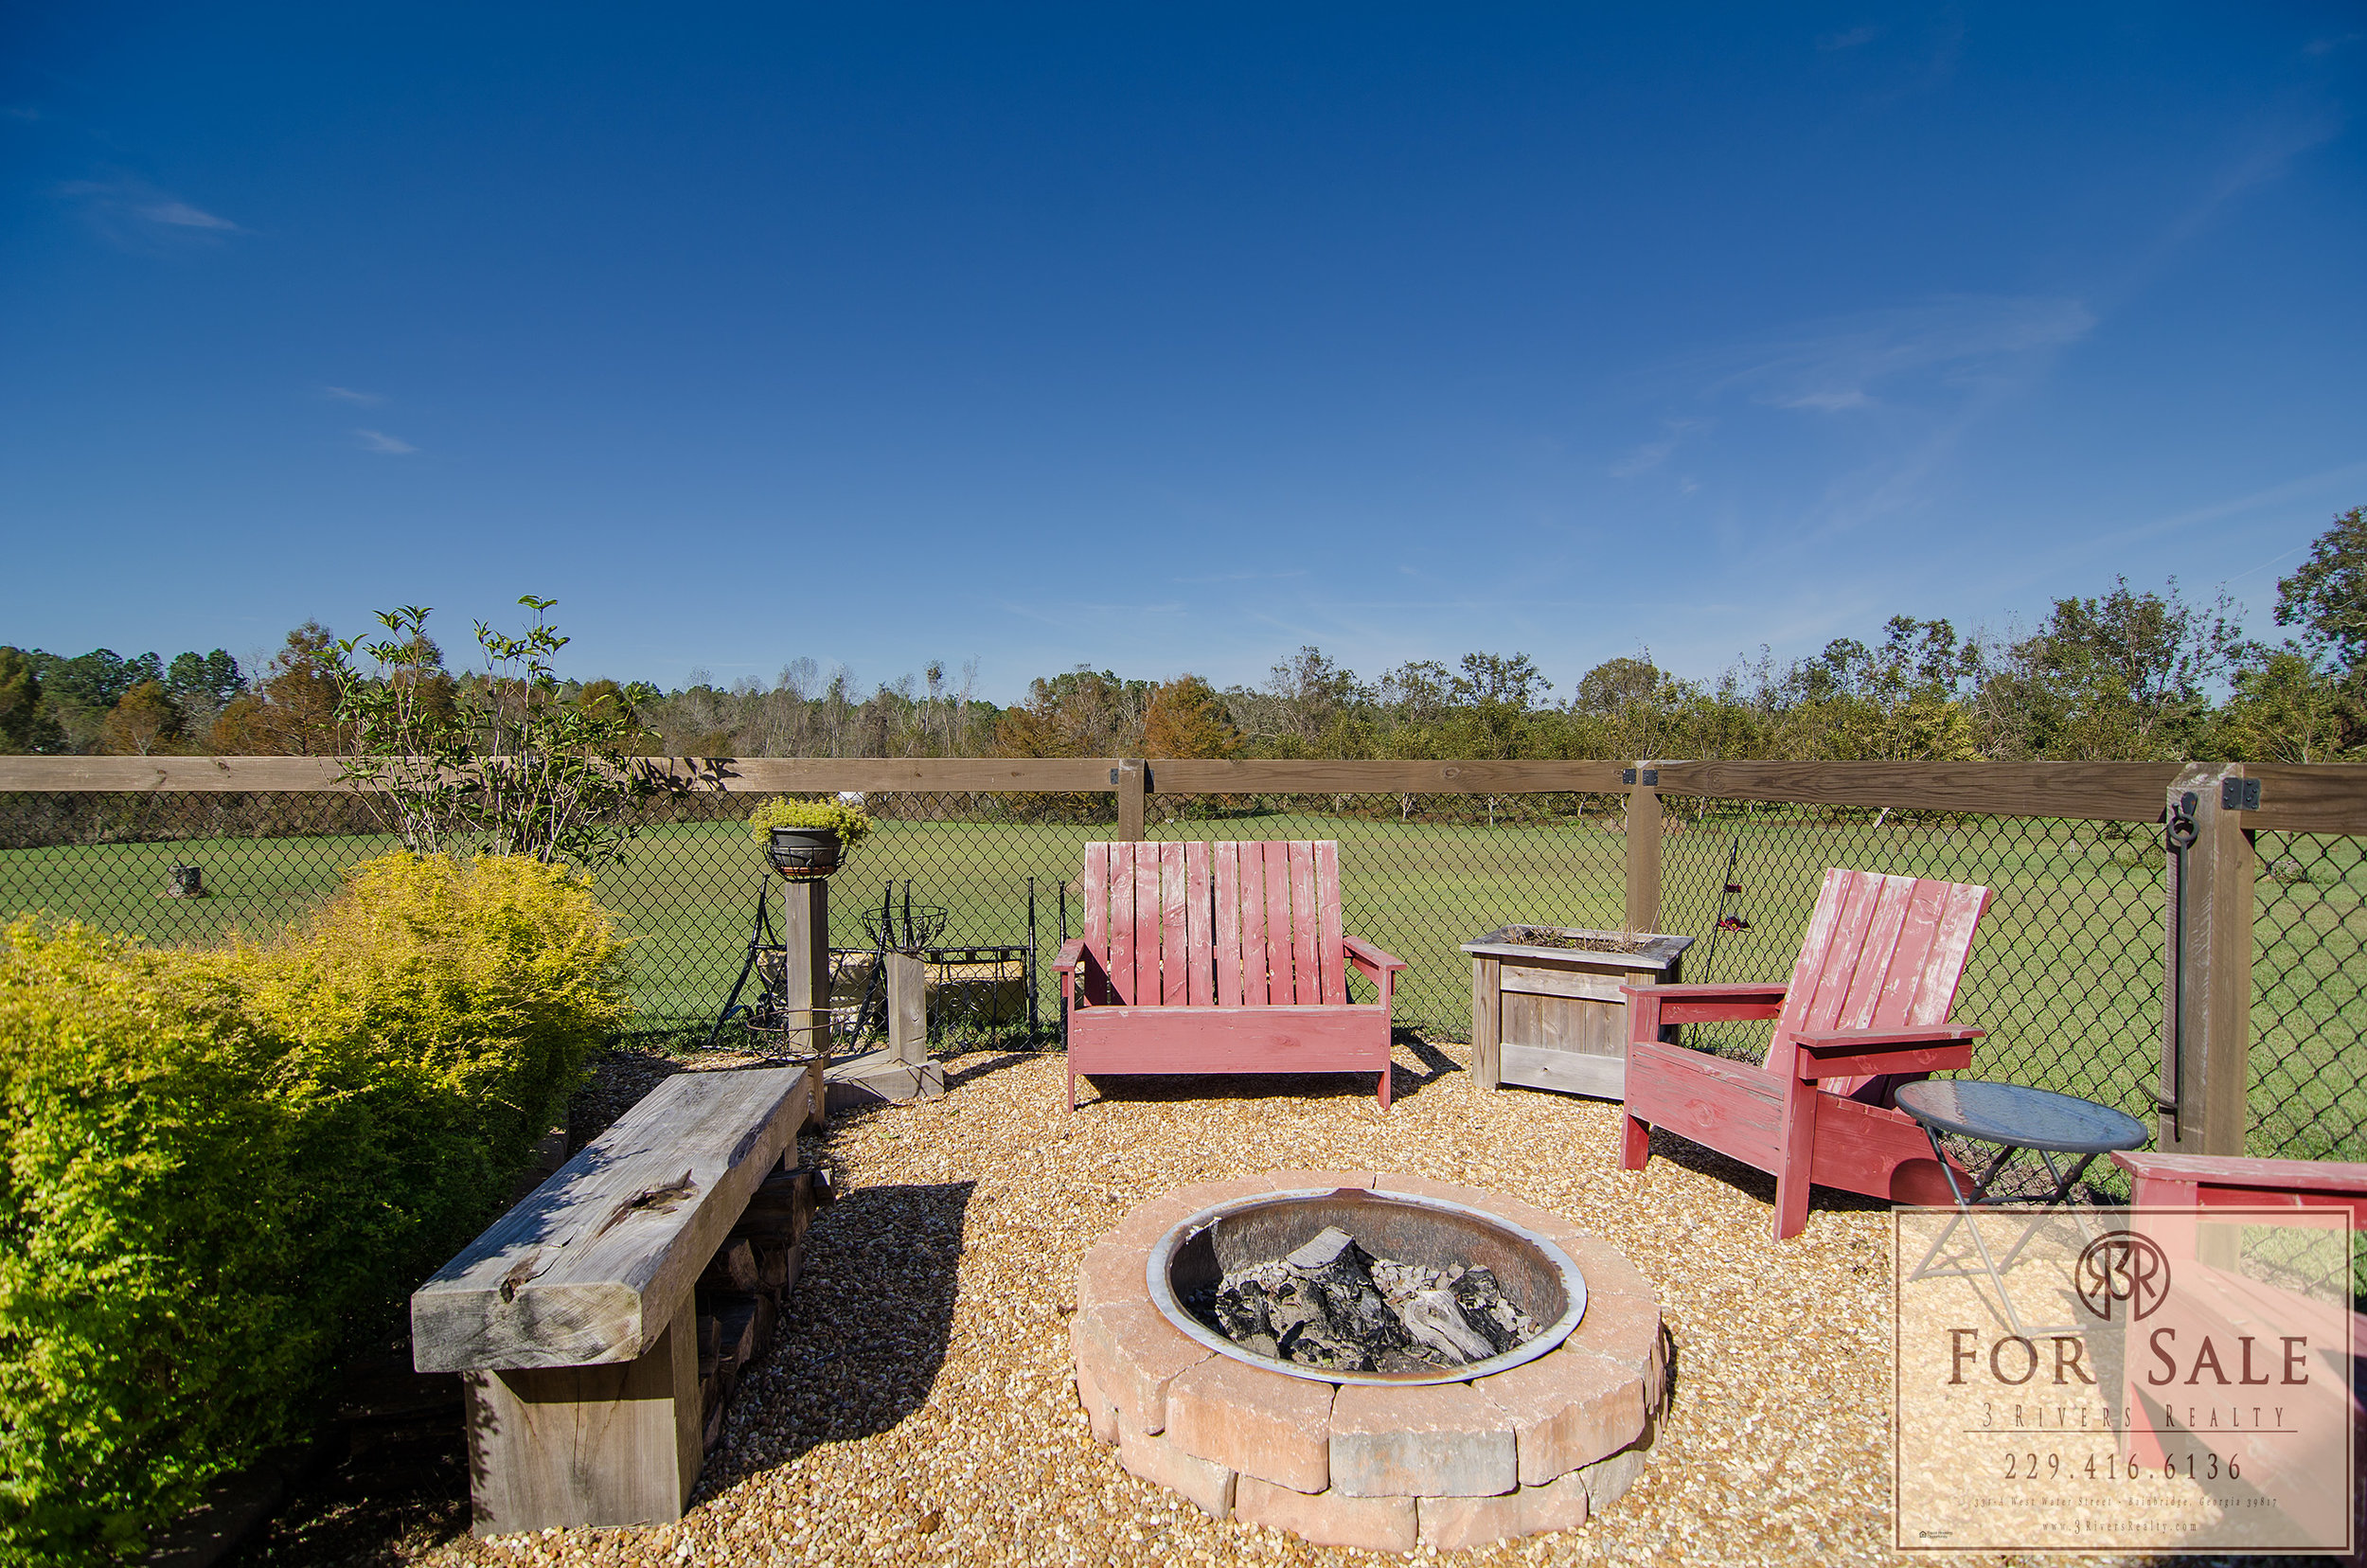 Fire Pit by Pool Deck - Spend the evenings by the fire while you watch the big screen on the porch.